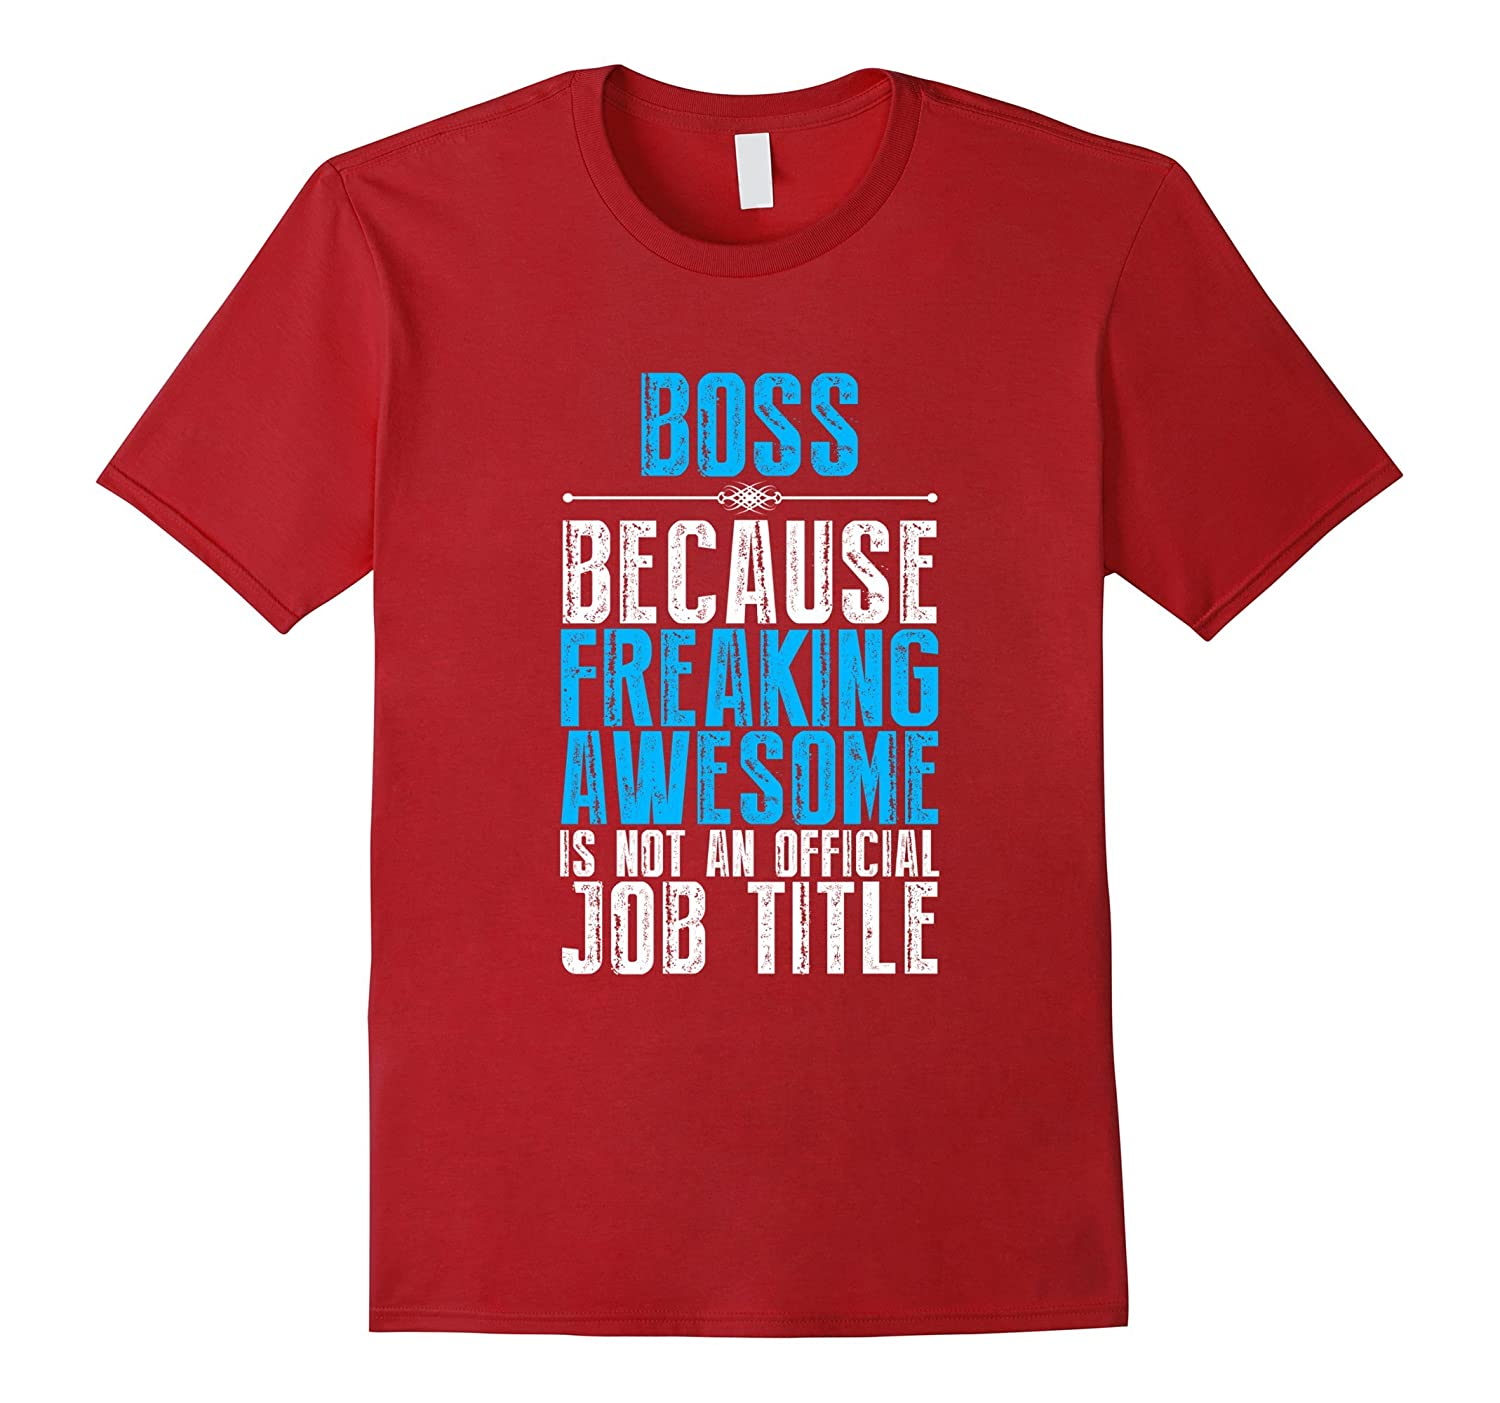 8b67efd9a6 Boss Freaking Awesome Job Title T-Shirt Funny Boss Day Quote-TJ ...